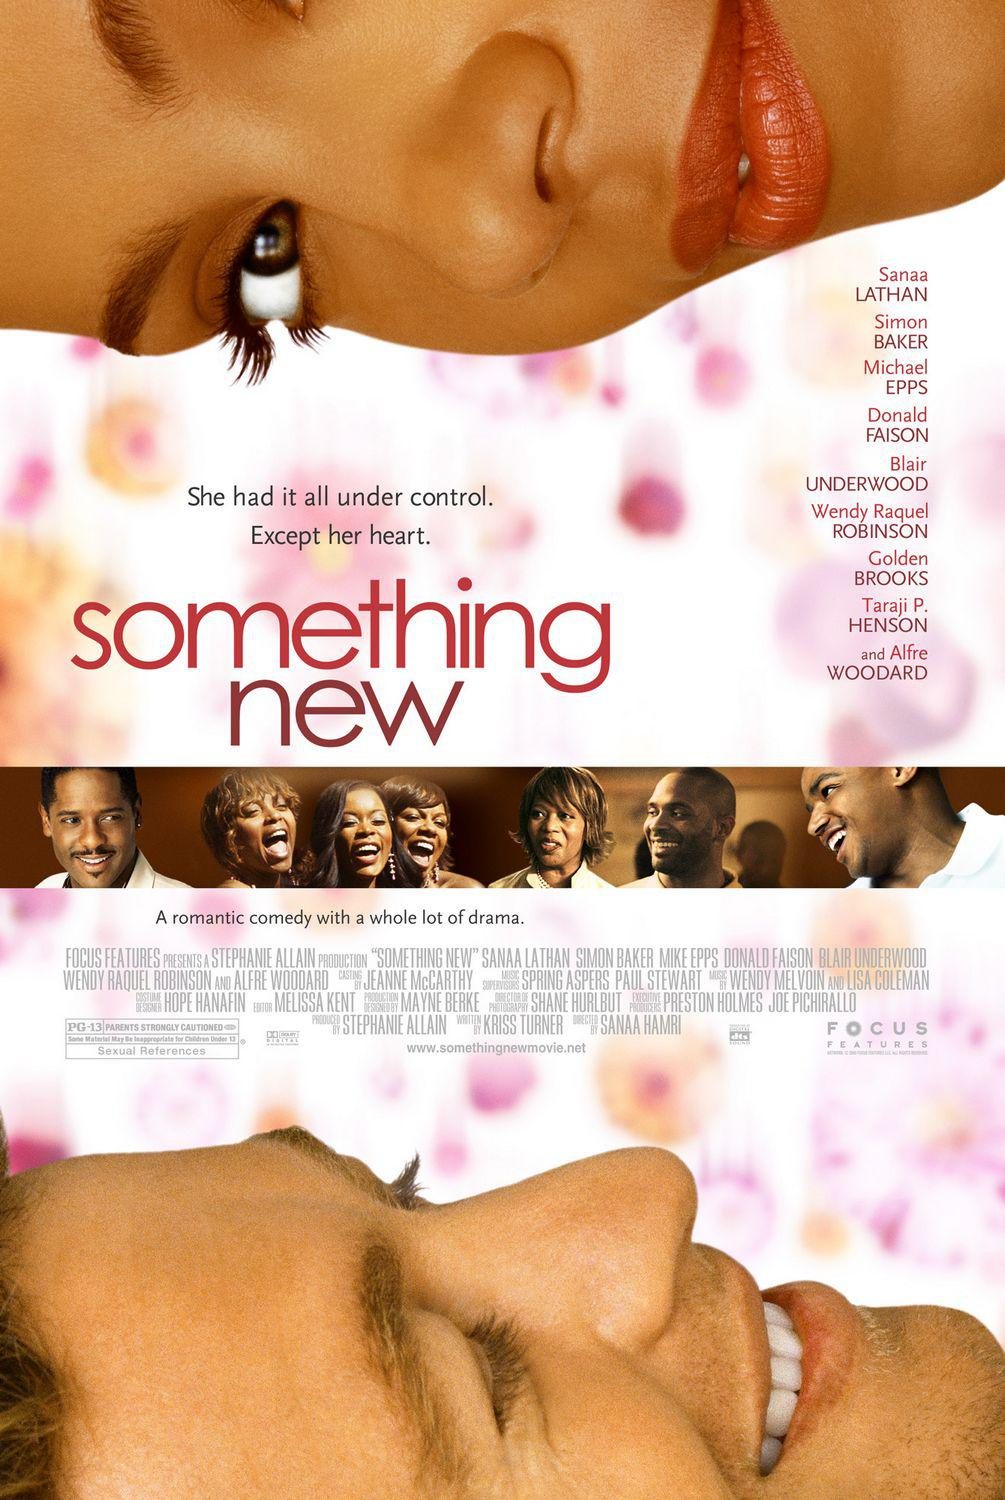 Something new - She had it all under control, except her heart - Sanaa Lathan - Simon Baker - Michael Epps - Donald Faison - Blair Underwood - Wendy Raquel Robinson - Golden Brooks - Taraji P. Henson - Alfre Woodard